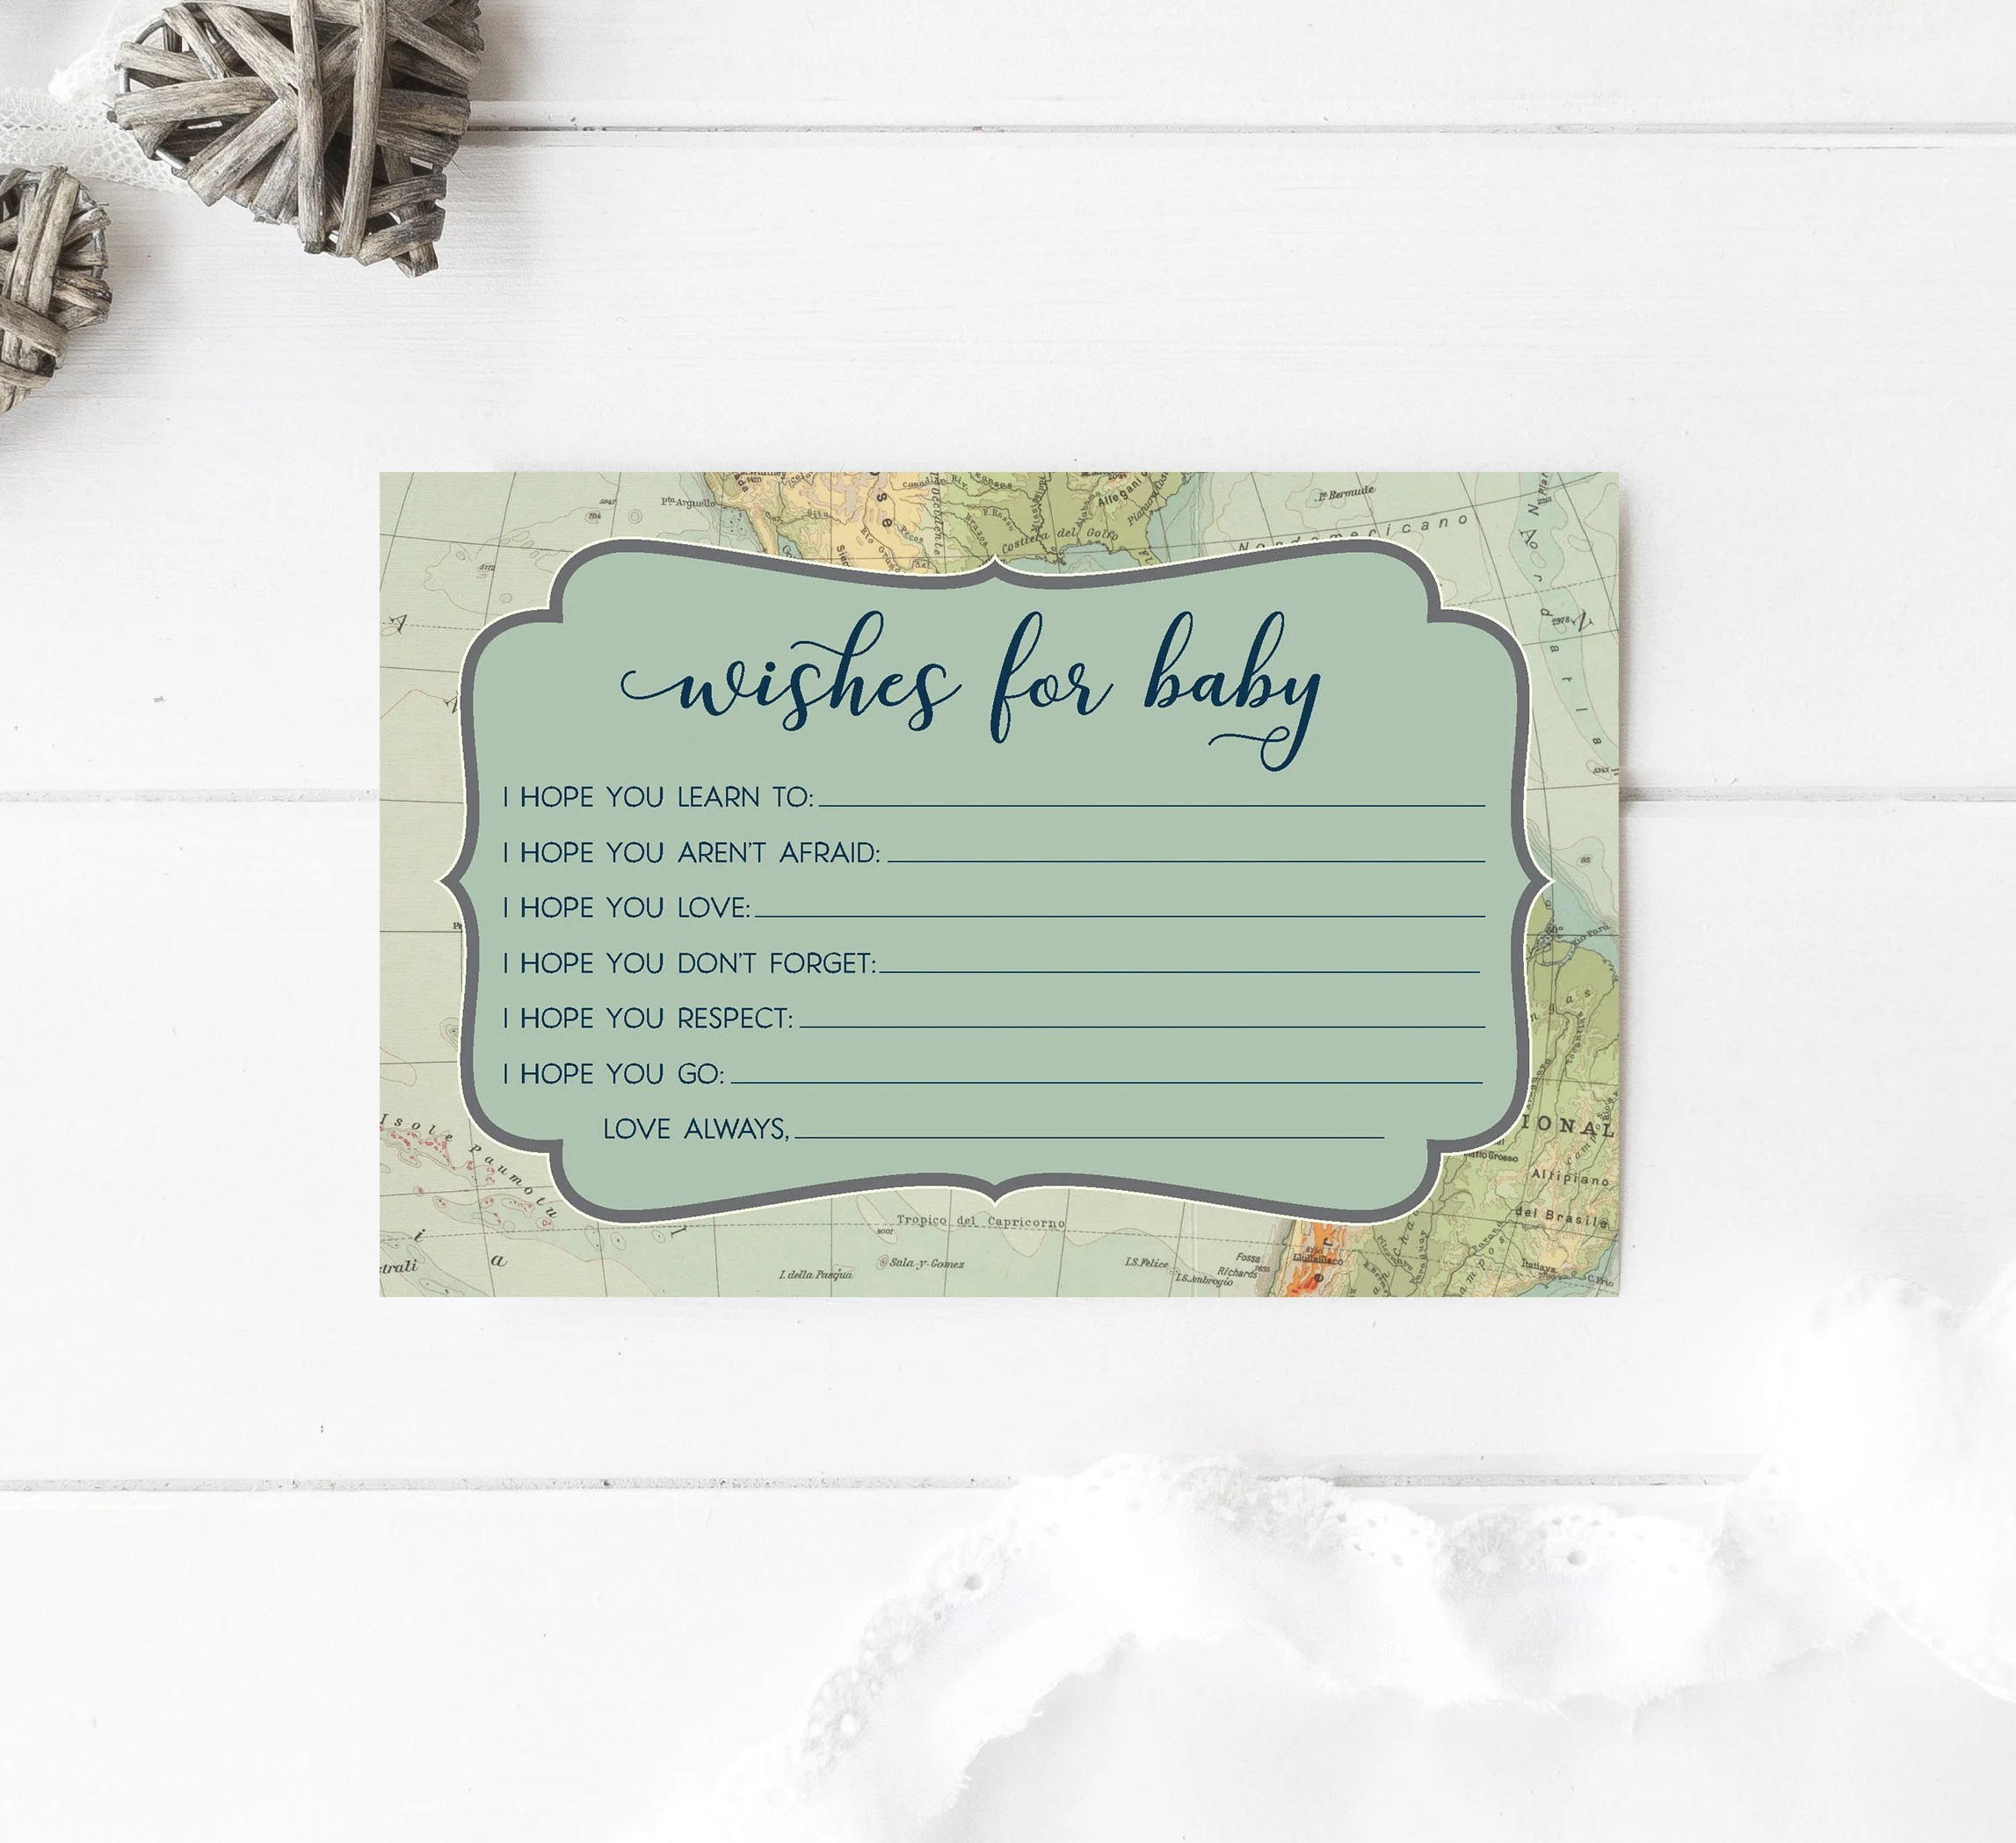 Wishes for Baby Shower Game Adventure Hopes for Baby Dear Baby